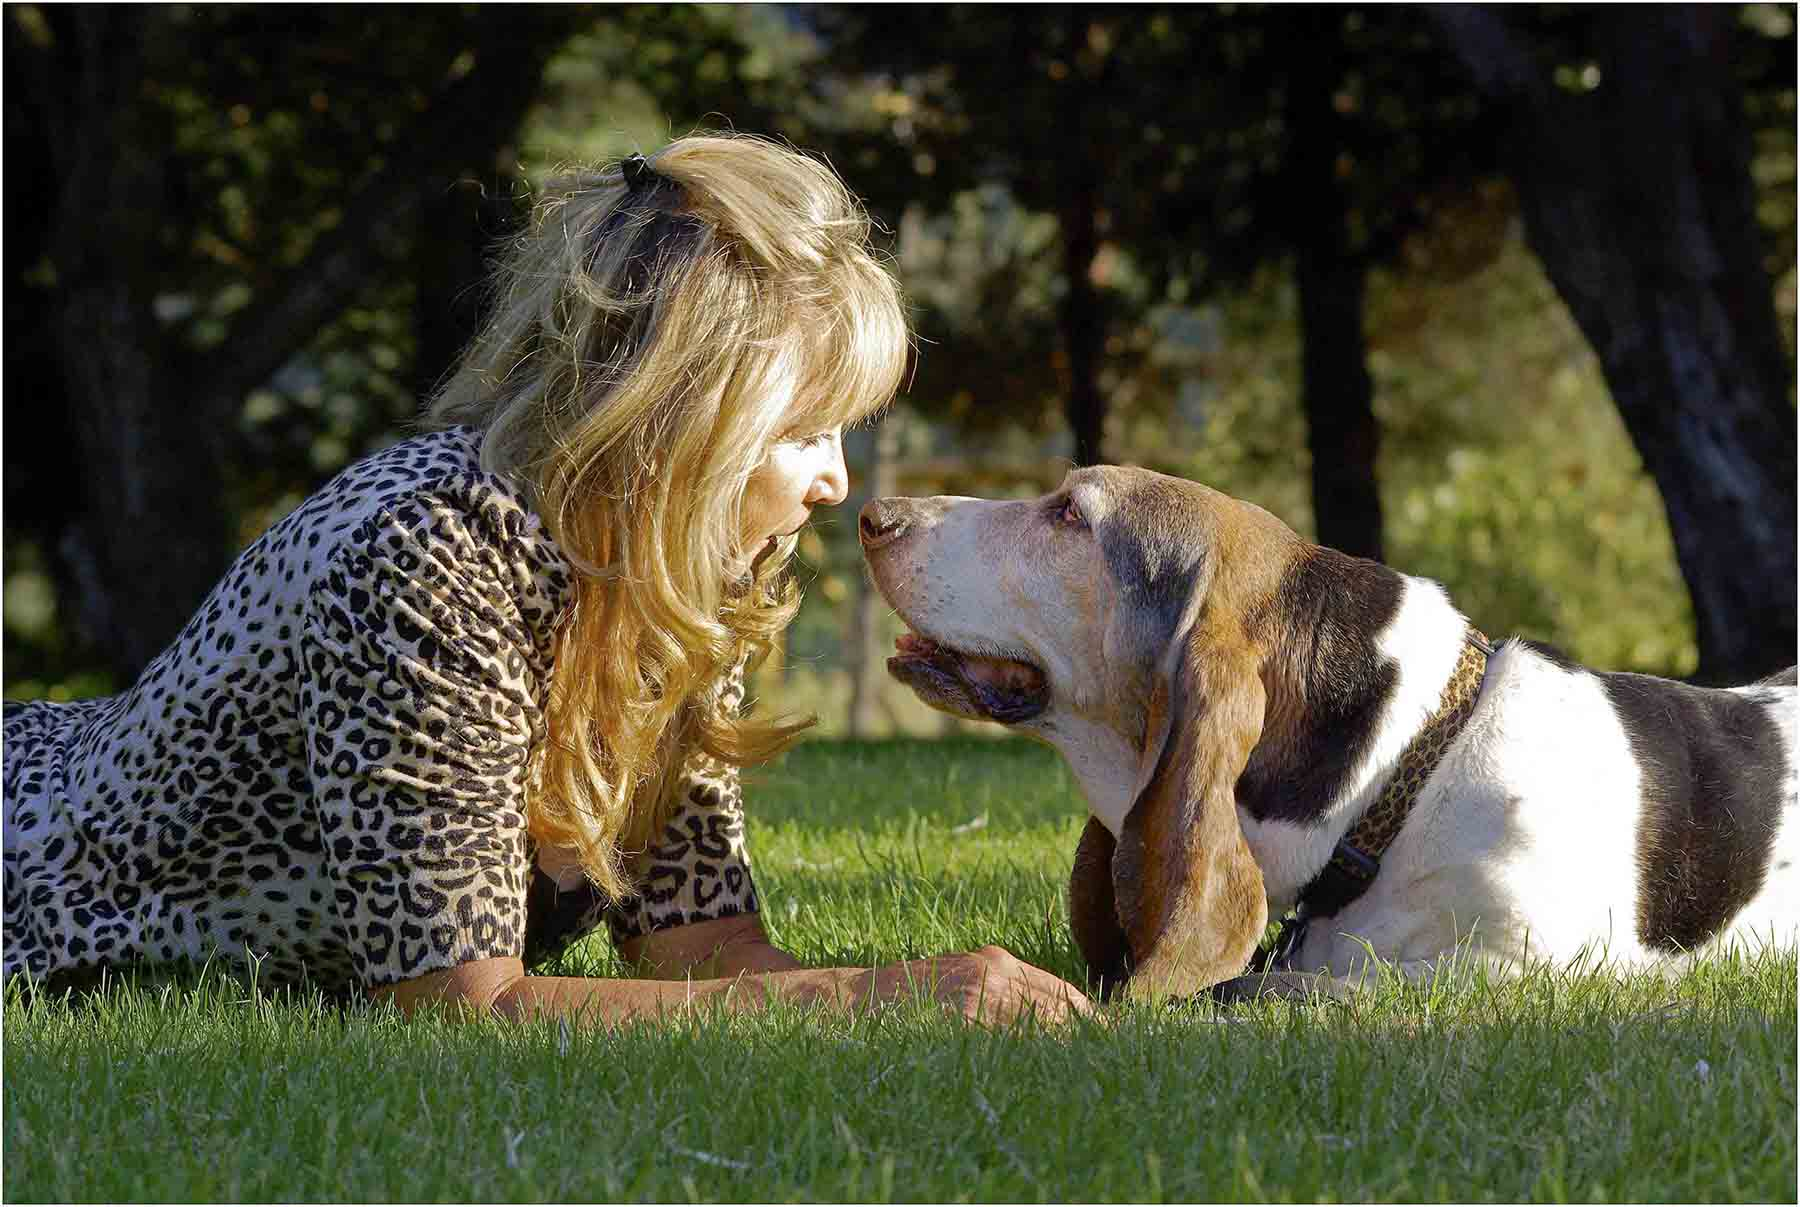 Surf Dog Diaries patriarch Elvis shared basset insight with his dog mom Barb Ayers for 13.5 years (95 in dog years.) His legend and advice lives on through the secret surf dog diaries.    Photo: (c) Barb Ayers, www.DogDiary.org